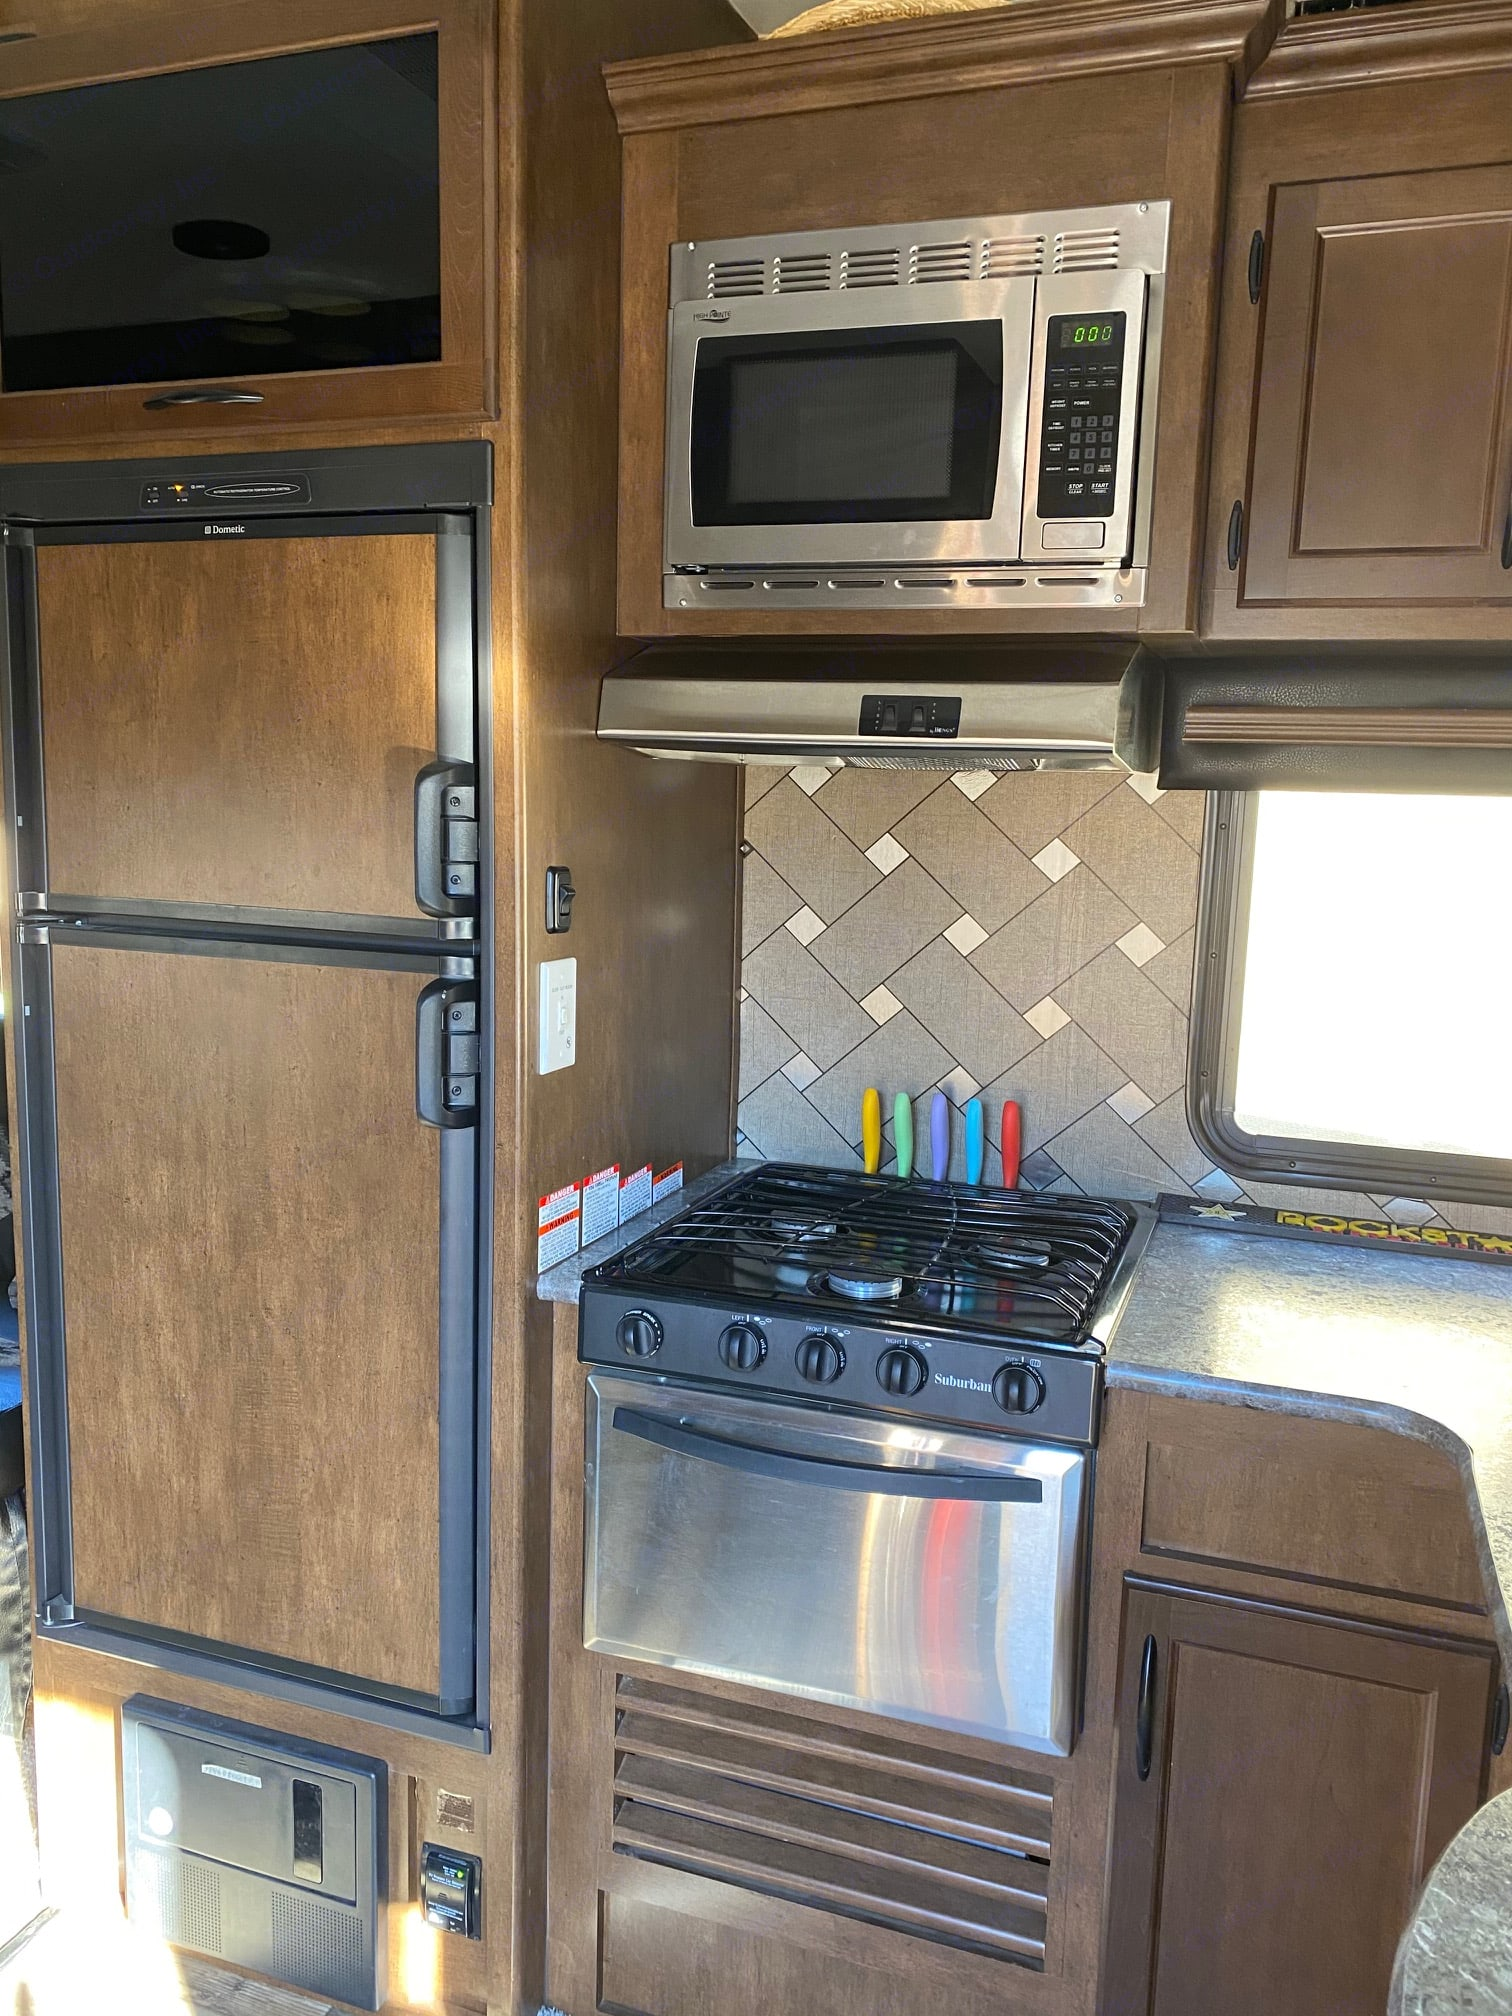 Full galley kitchen with stove, microwave, refrigerator and freezer. Pacific Coachworks Sandsport 2016